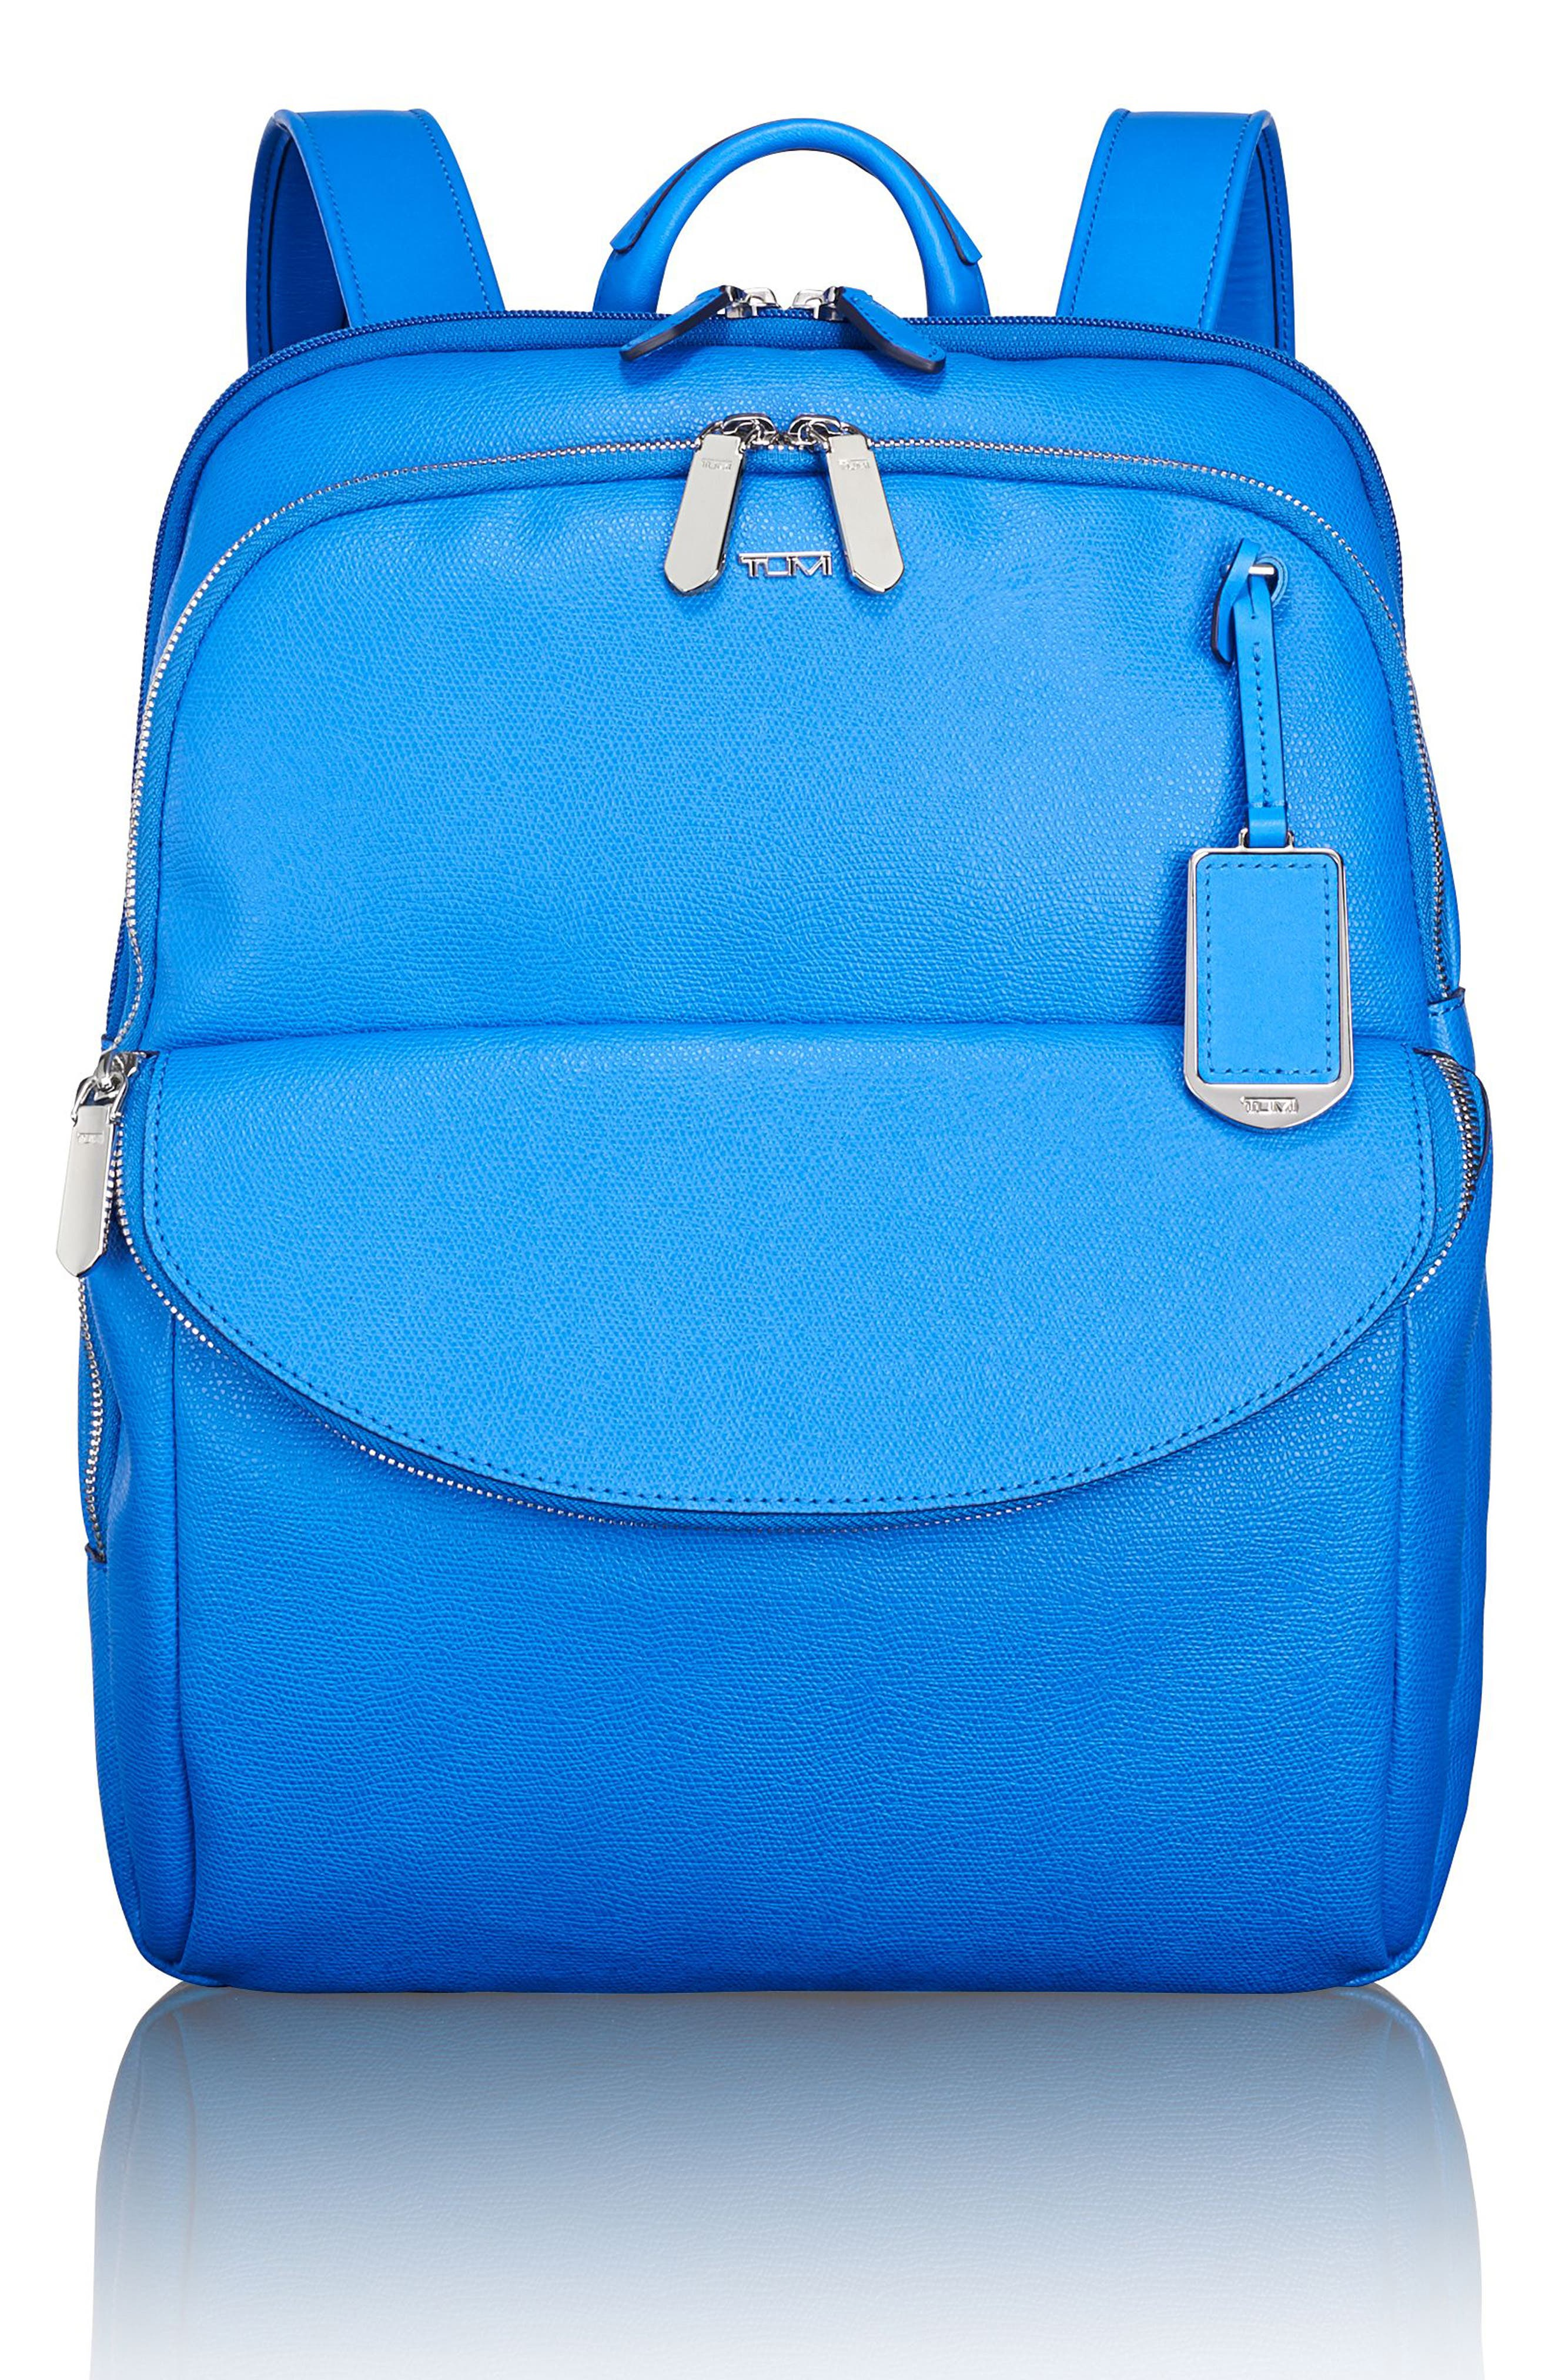 Main Image - Tumi Sinclair - Hanne Coated Canvas Laptop Backpack